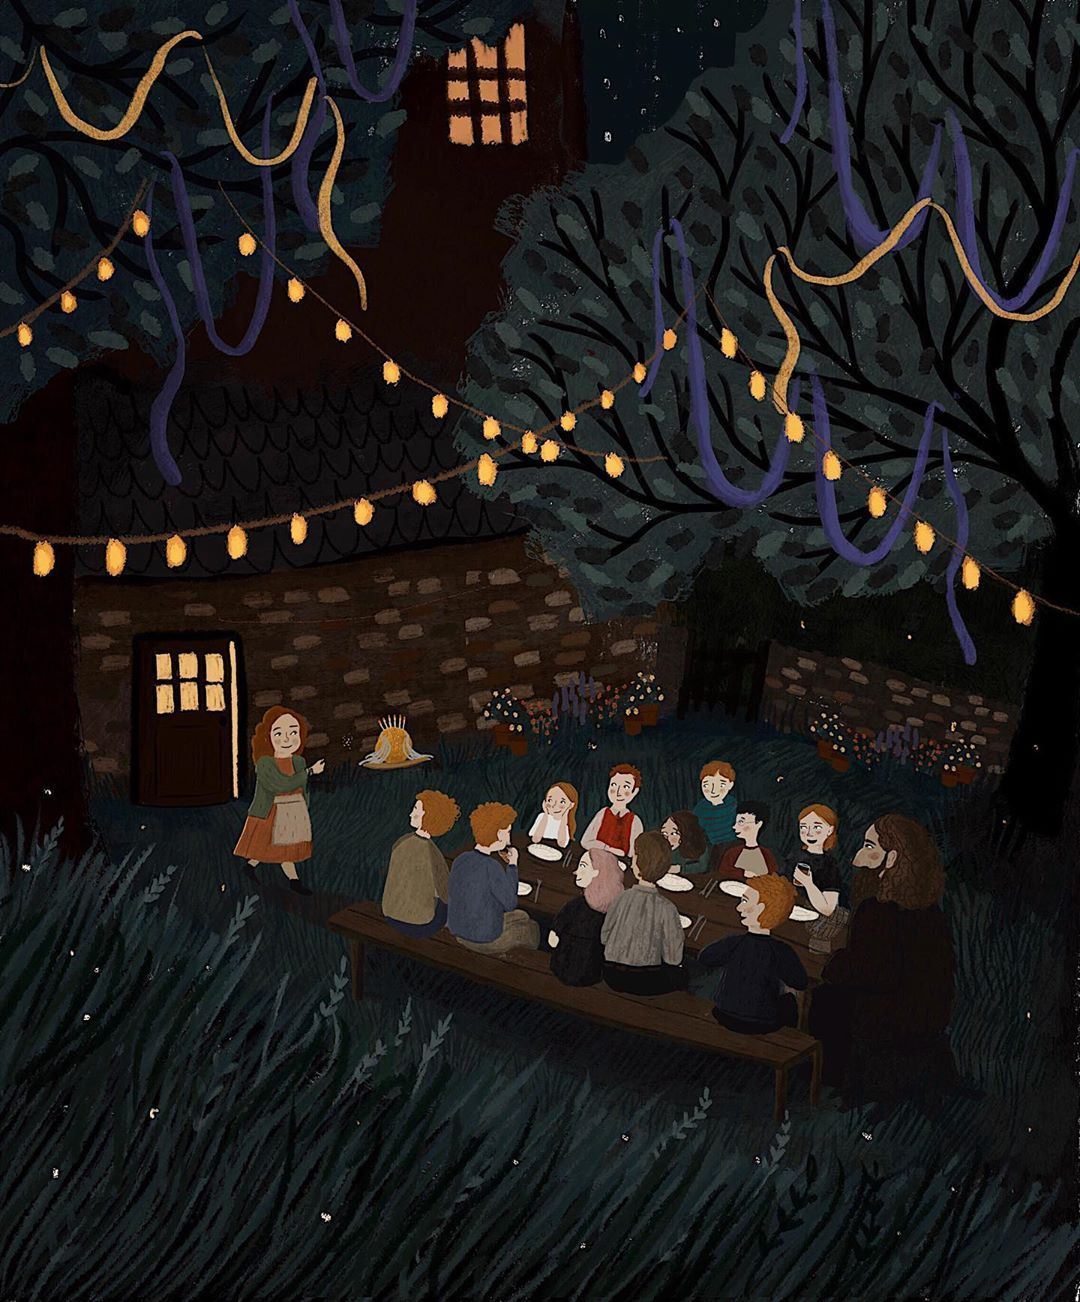 Jess Mason Illustration On Instagram Day Two In The Garden Harry S 17th Birthday At The Burrow Harry Potter Illustrations The Burrow Night Illustration